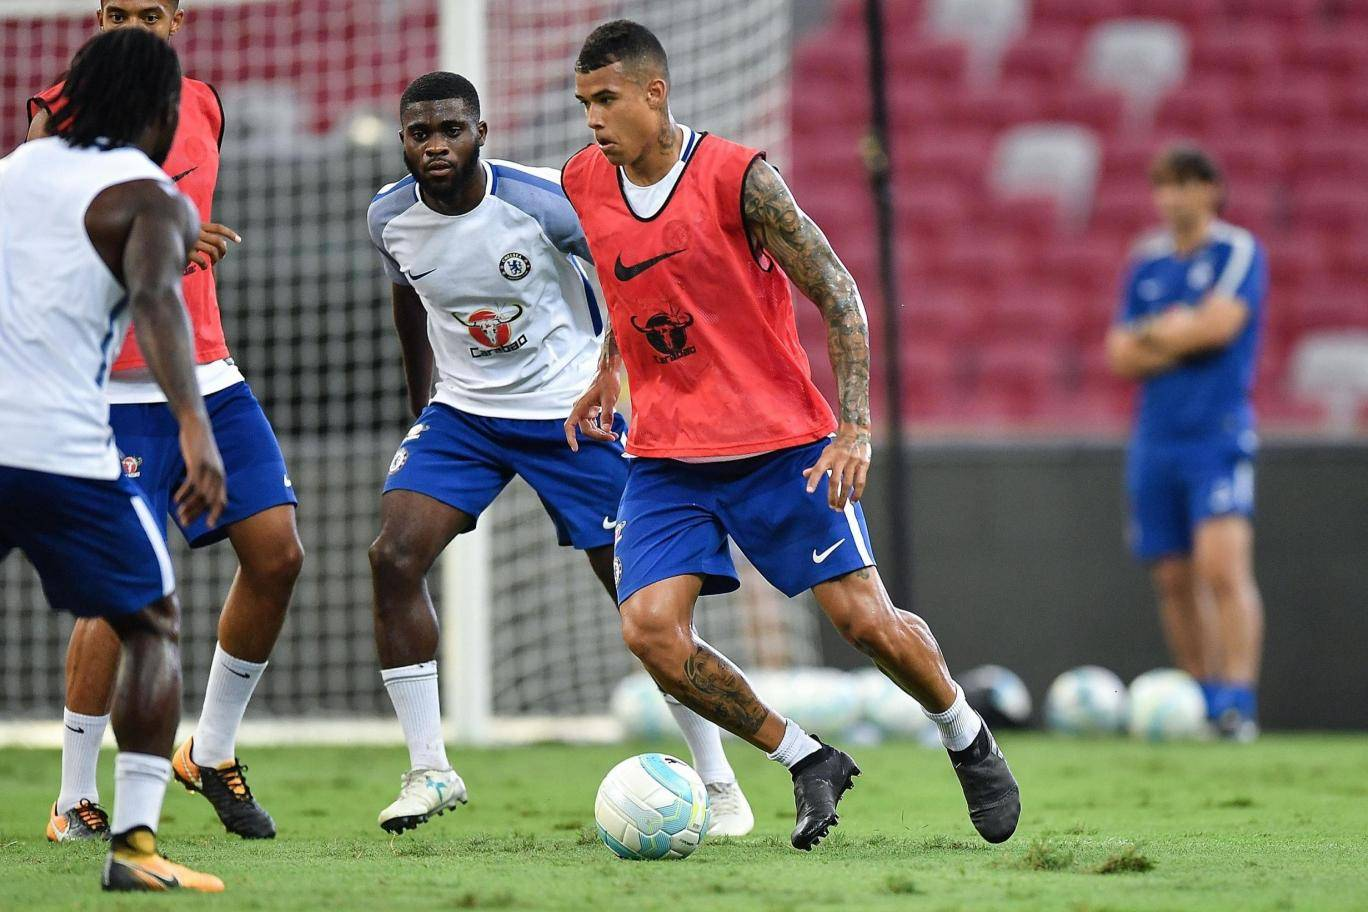 Kenedy sent home from Chelsea's pre-season tour over offensive posts to Chinese